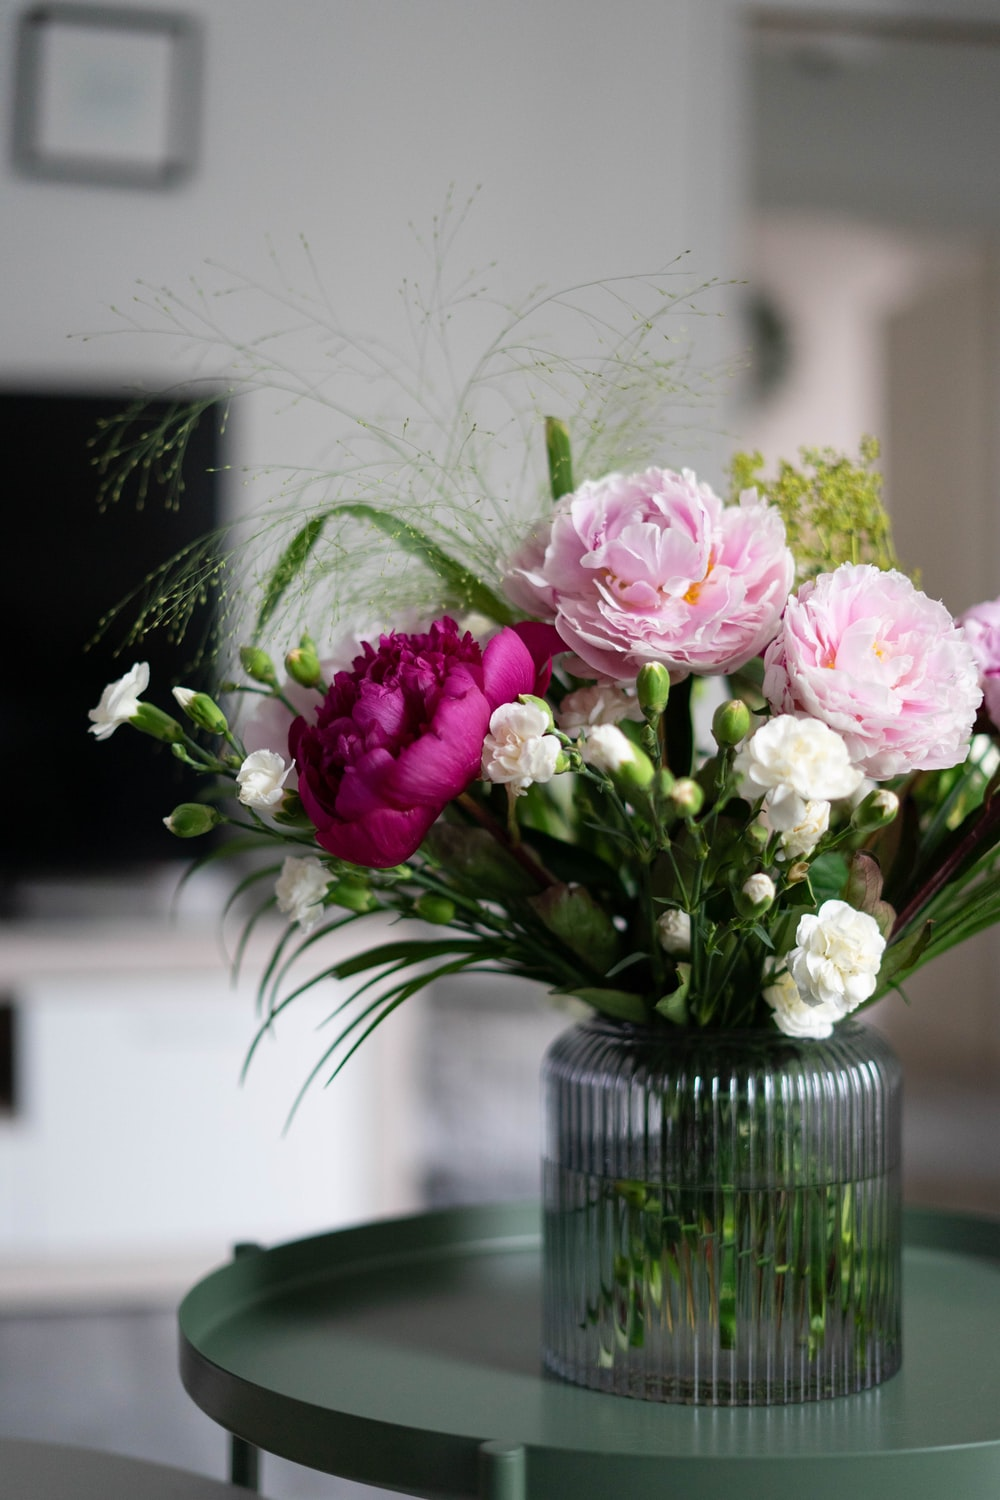 pink and white flowers in clear glass vase